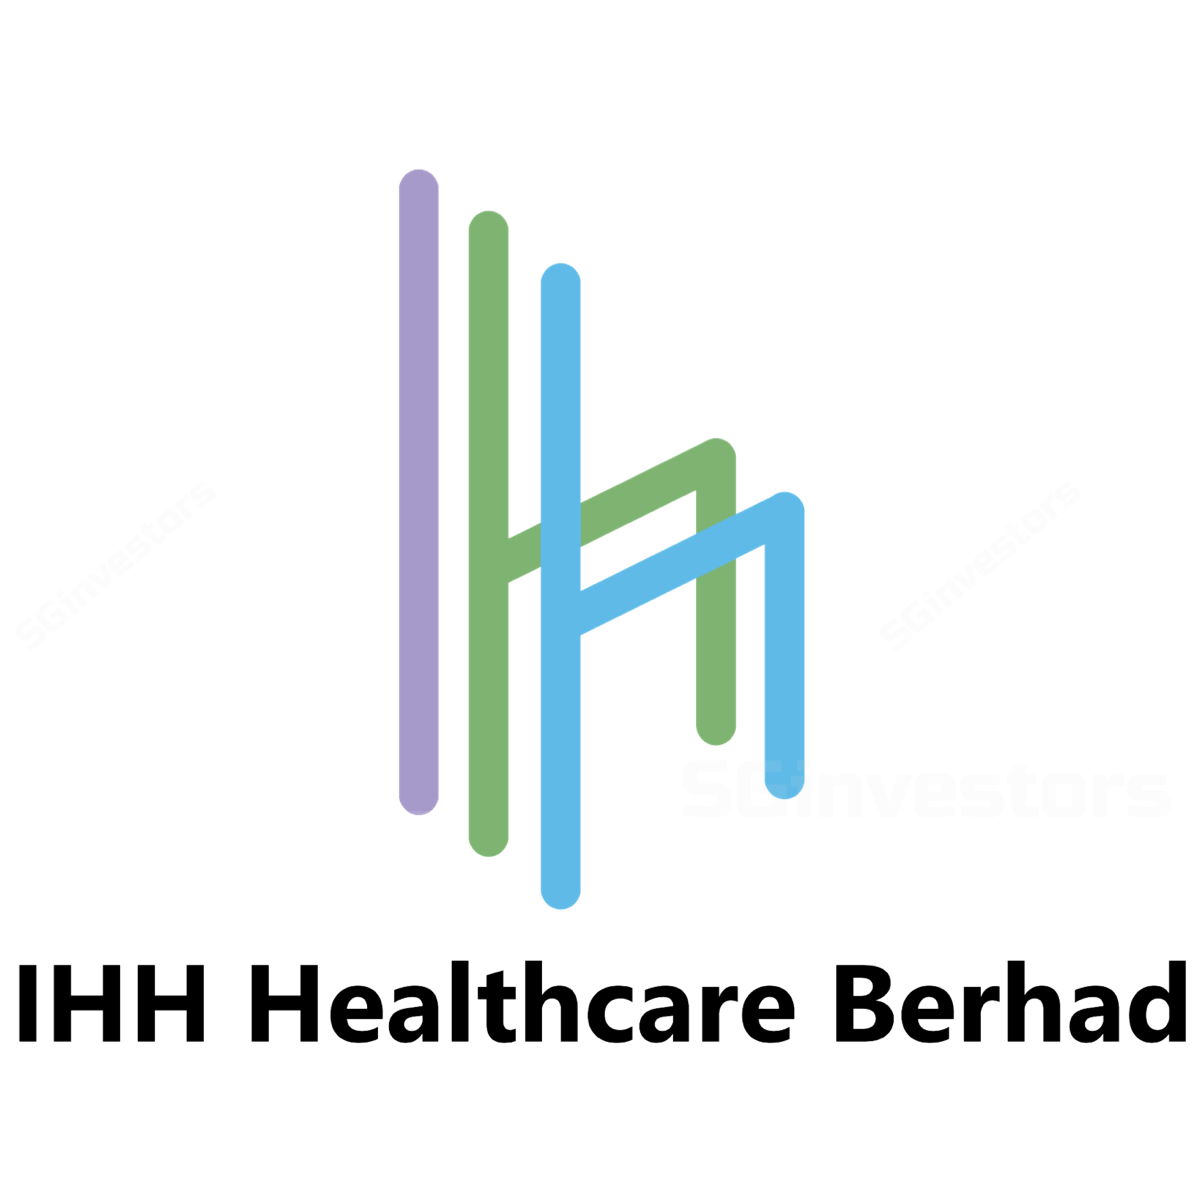 IHH Healthcare (IHH MK) : - DBS Vickers 2017-11-28: Getting There!